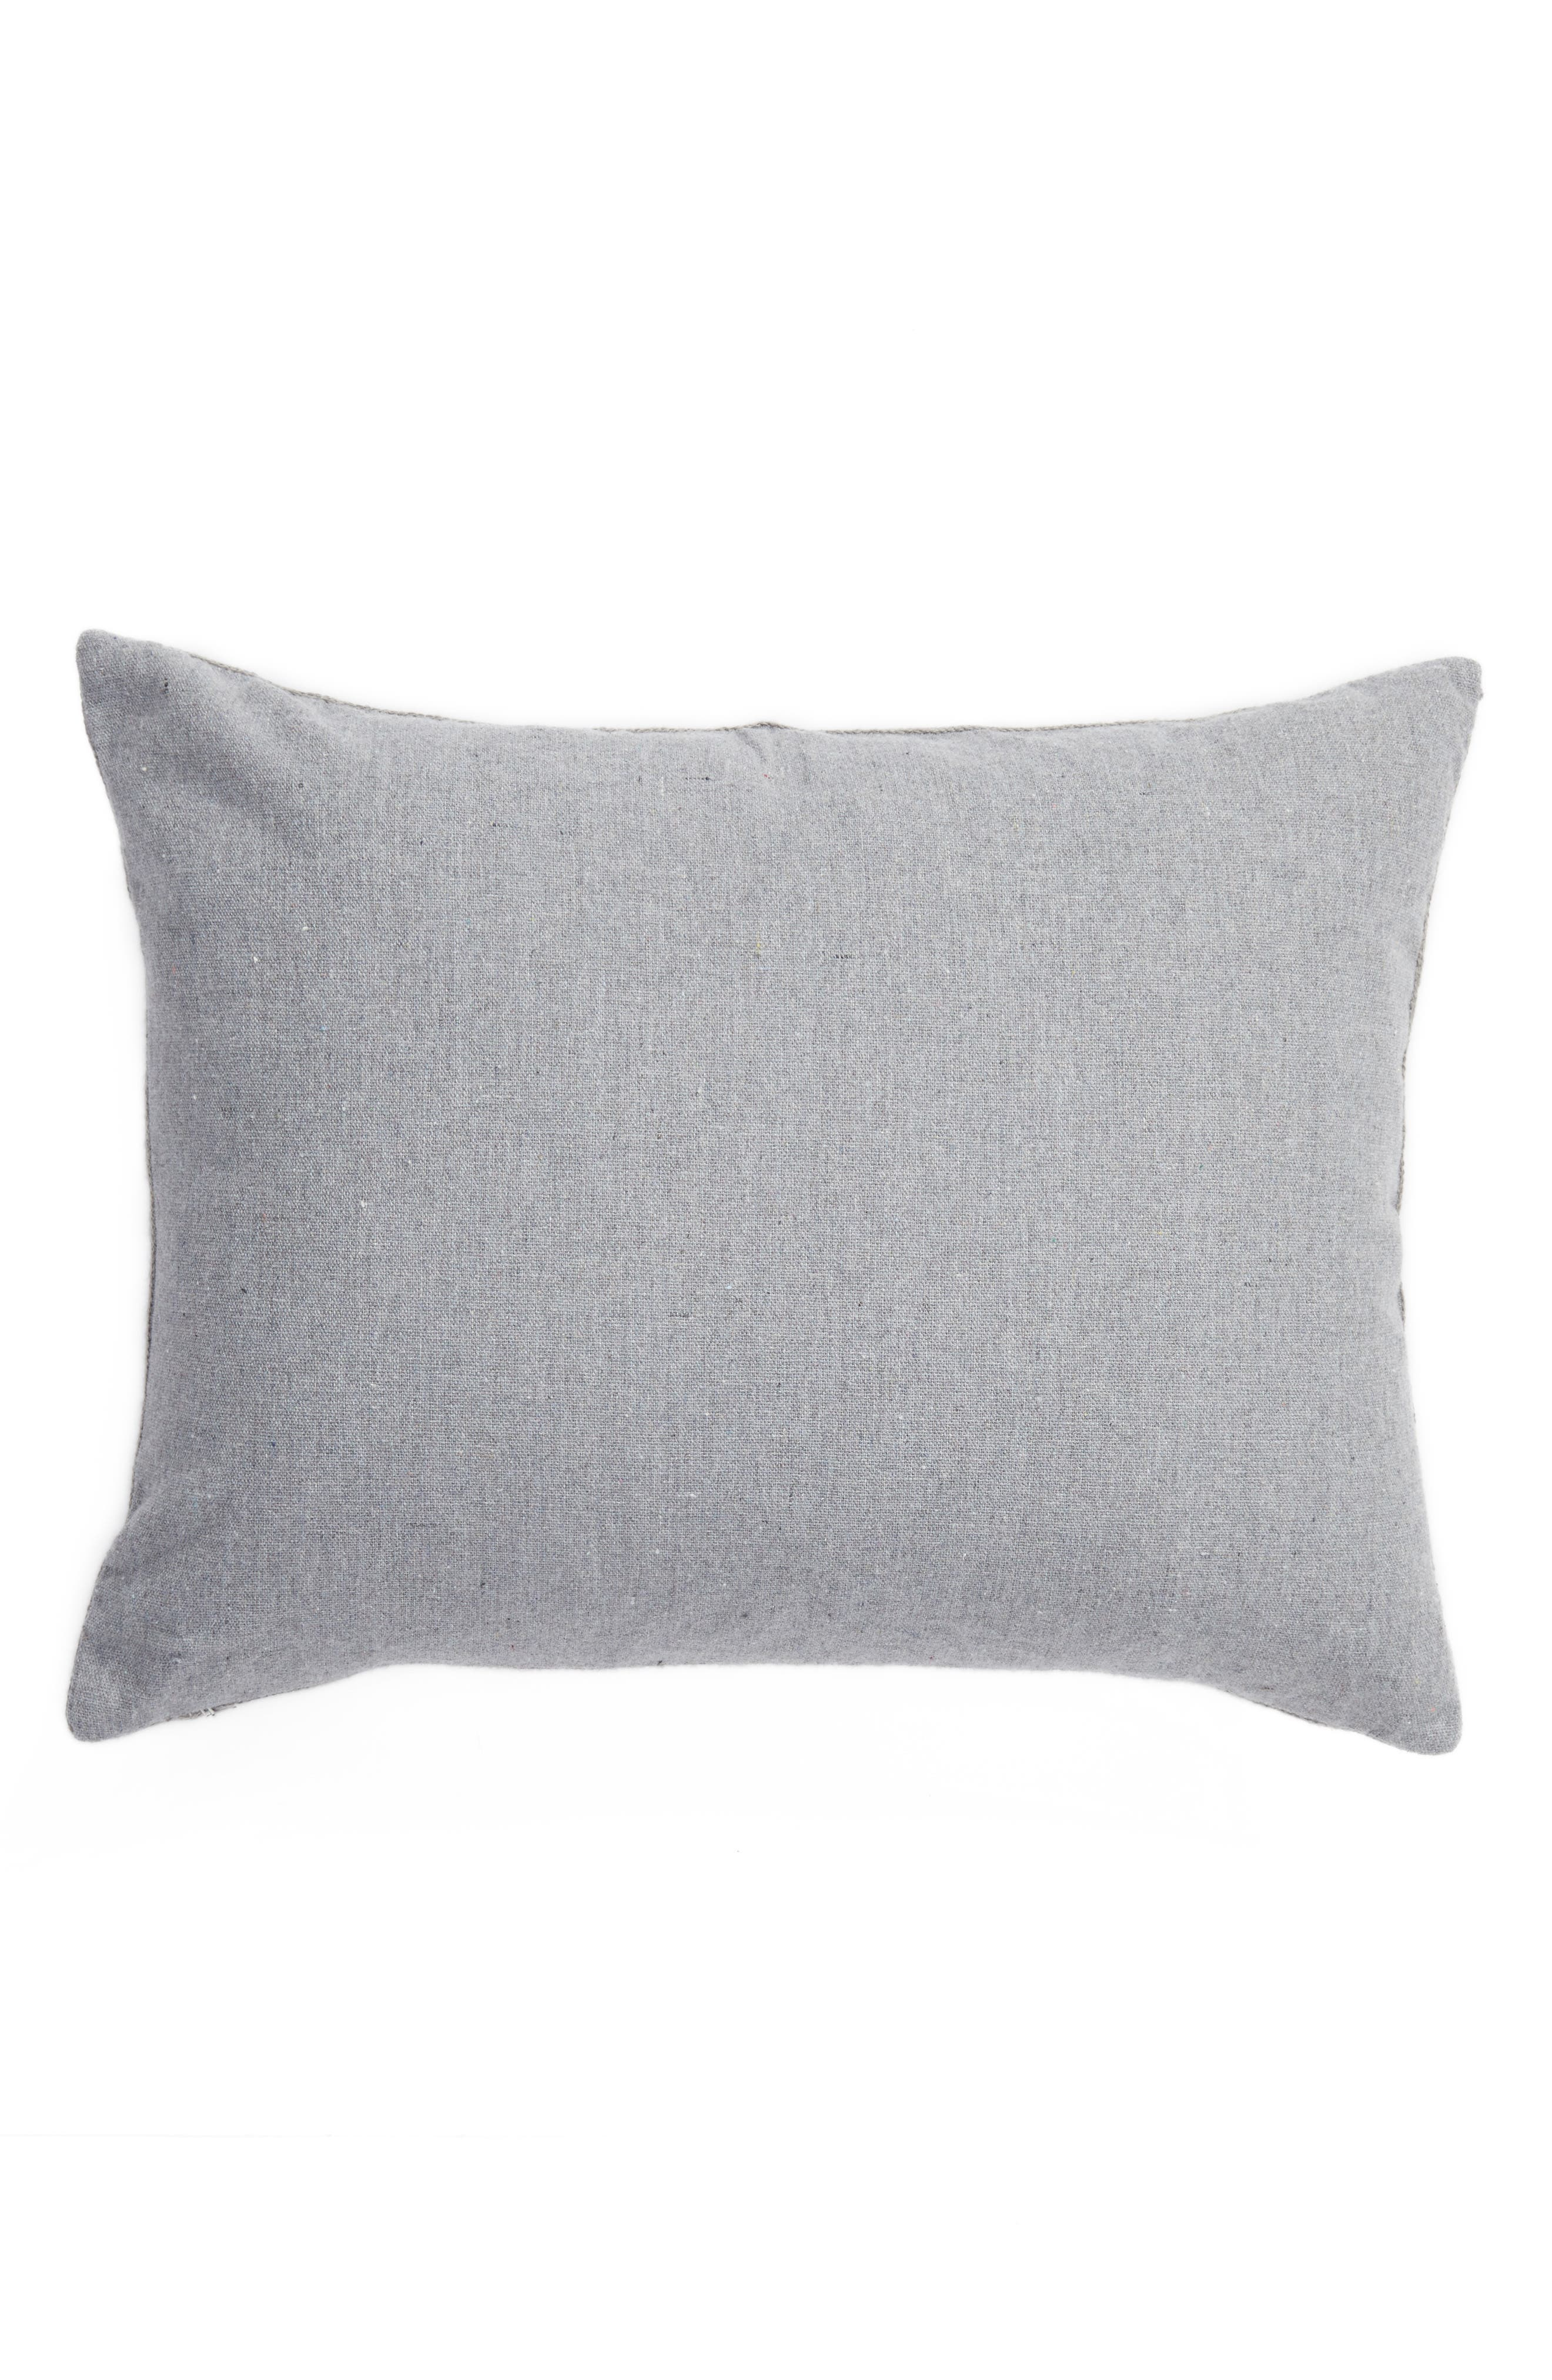 Caleb Crewel Stitch Accent Pillow,                             Alternate thumbnail 2, color,                             040